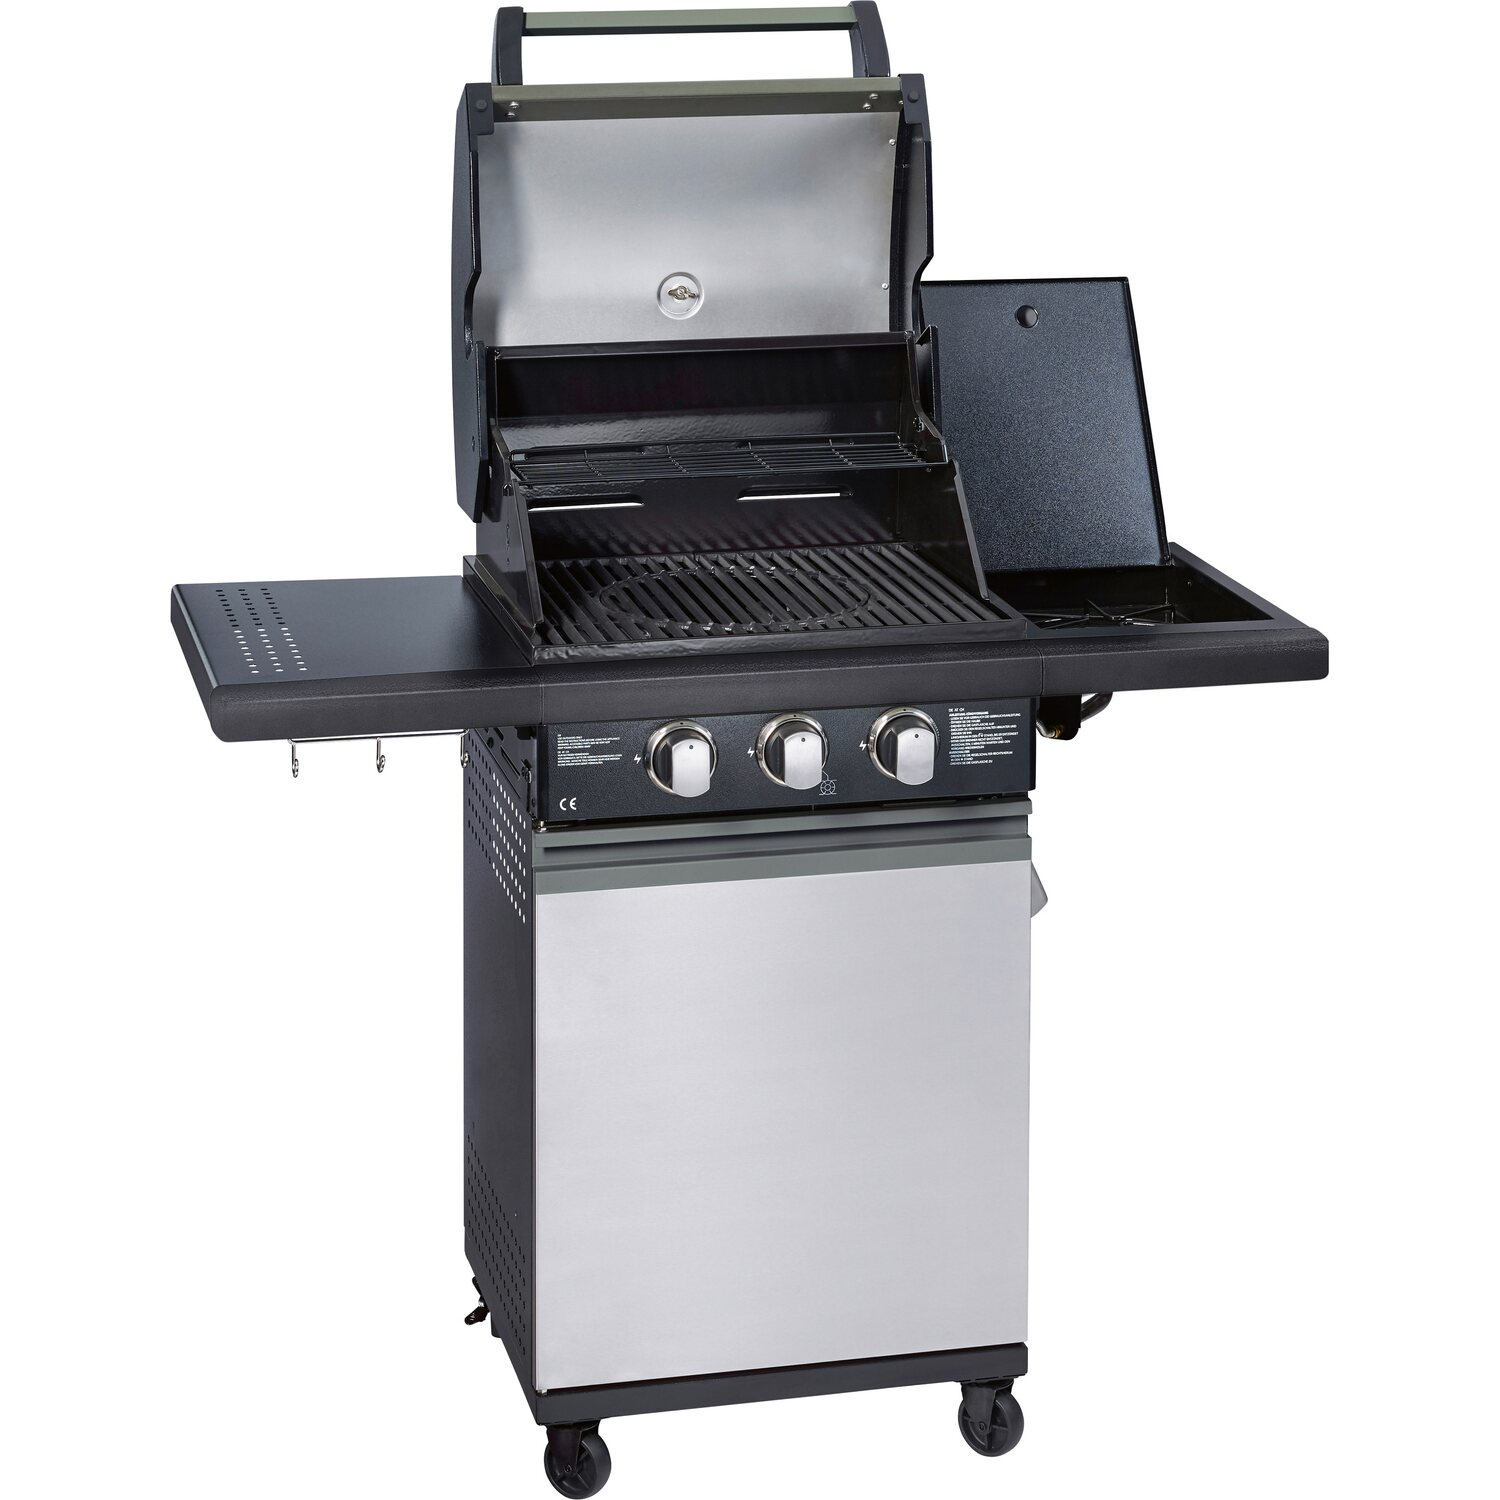 enders bbq gasgrill baltimore gas grill 81496 2 guss brenner stufenlos grillwagen mit. Black Bedroom Furniture Sets. Home Design Ideas